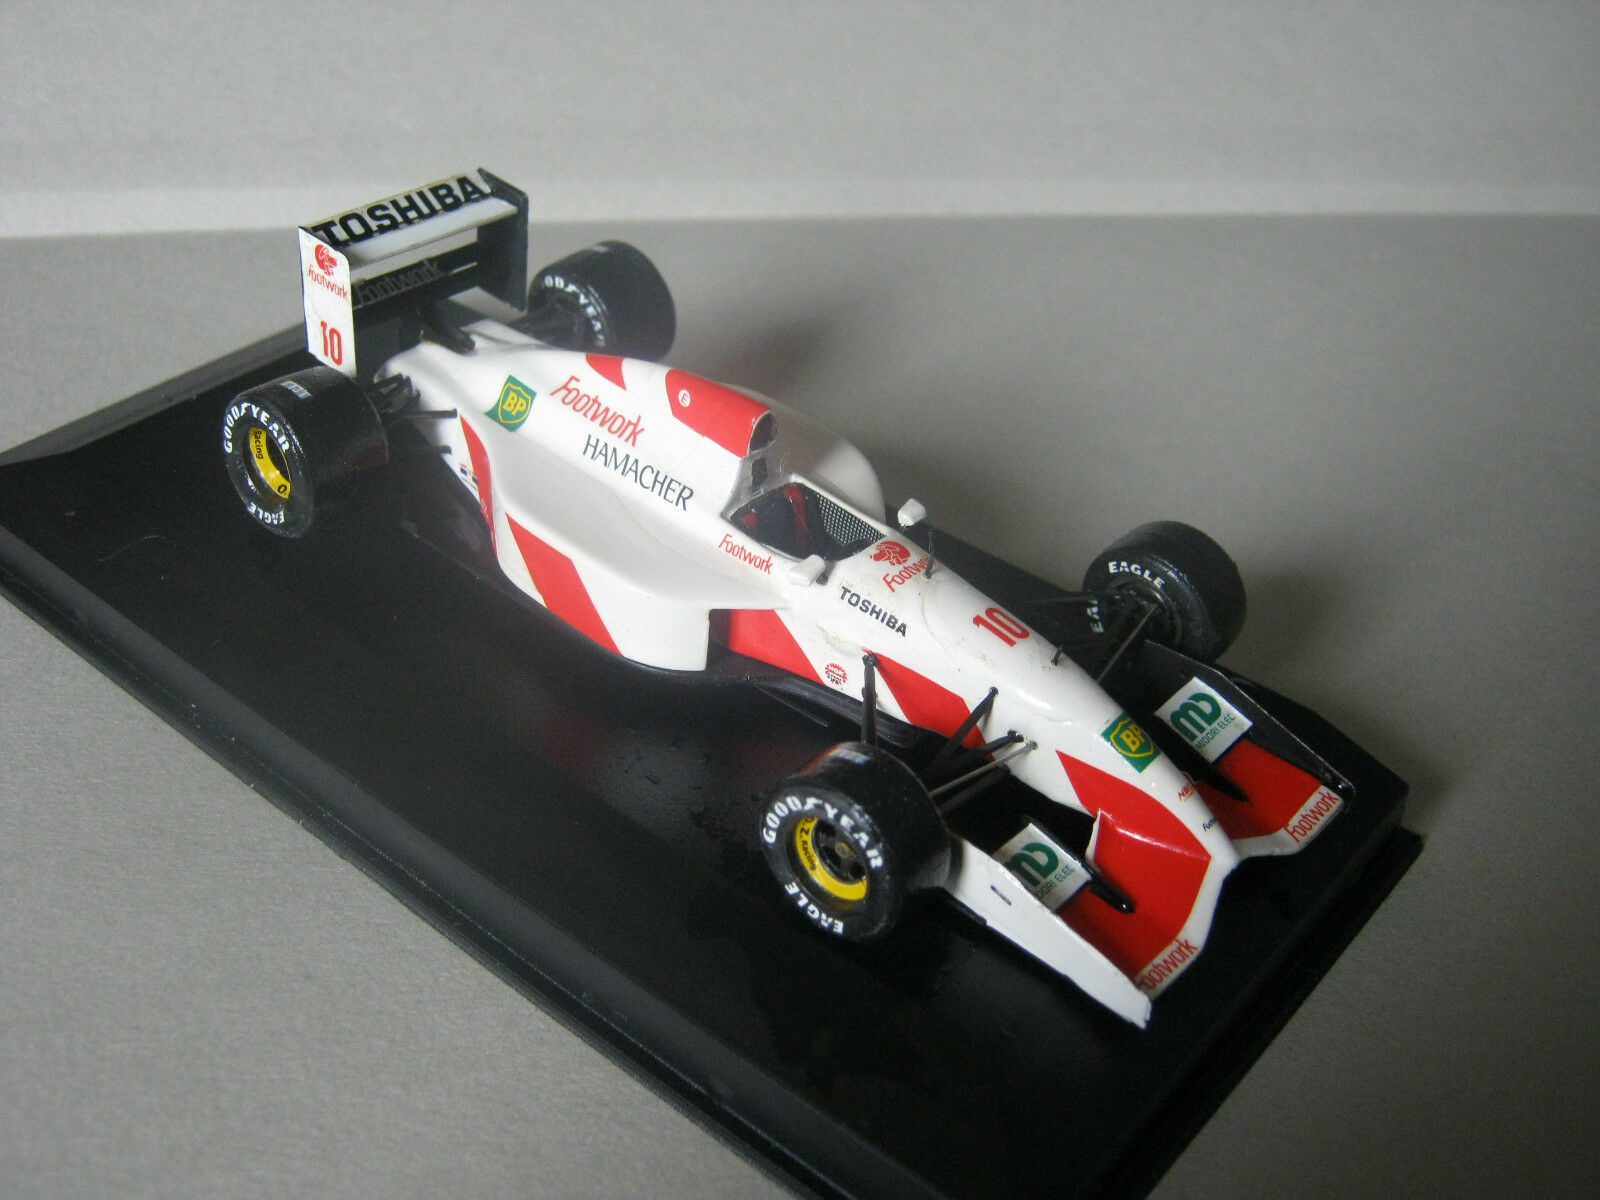 1 43 arrows footwork fa13 a. suzuki 1992 Tameo Handbuilt modelCoche en Showcase